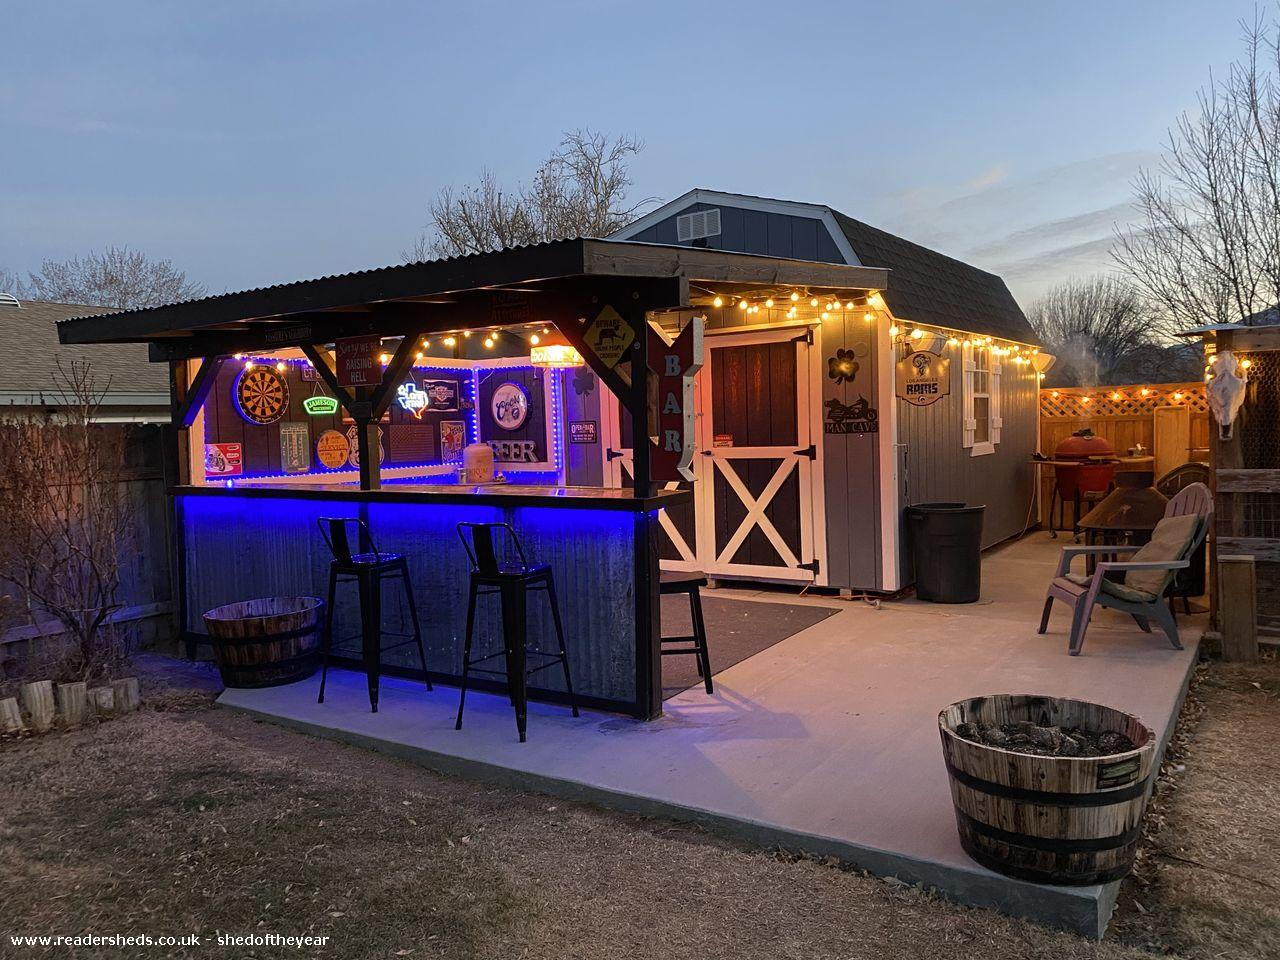 Photo of The Lucky Barrow, entry to Shed of the year